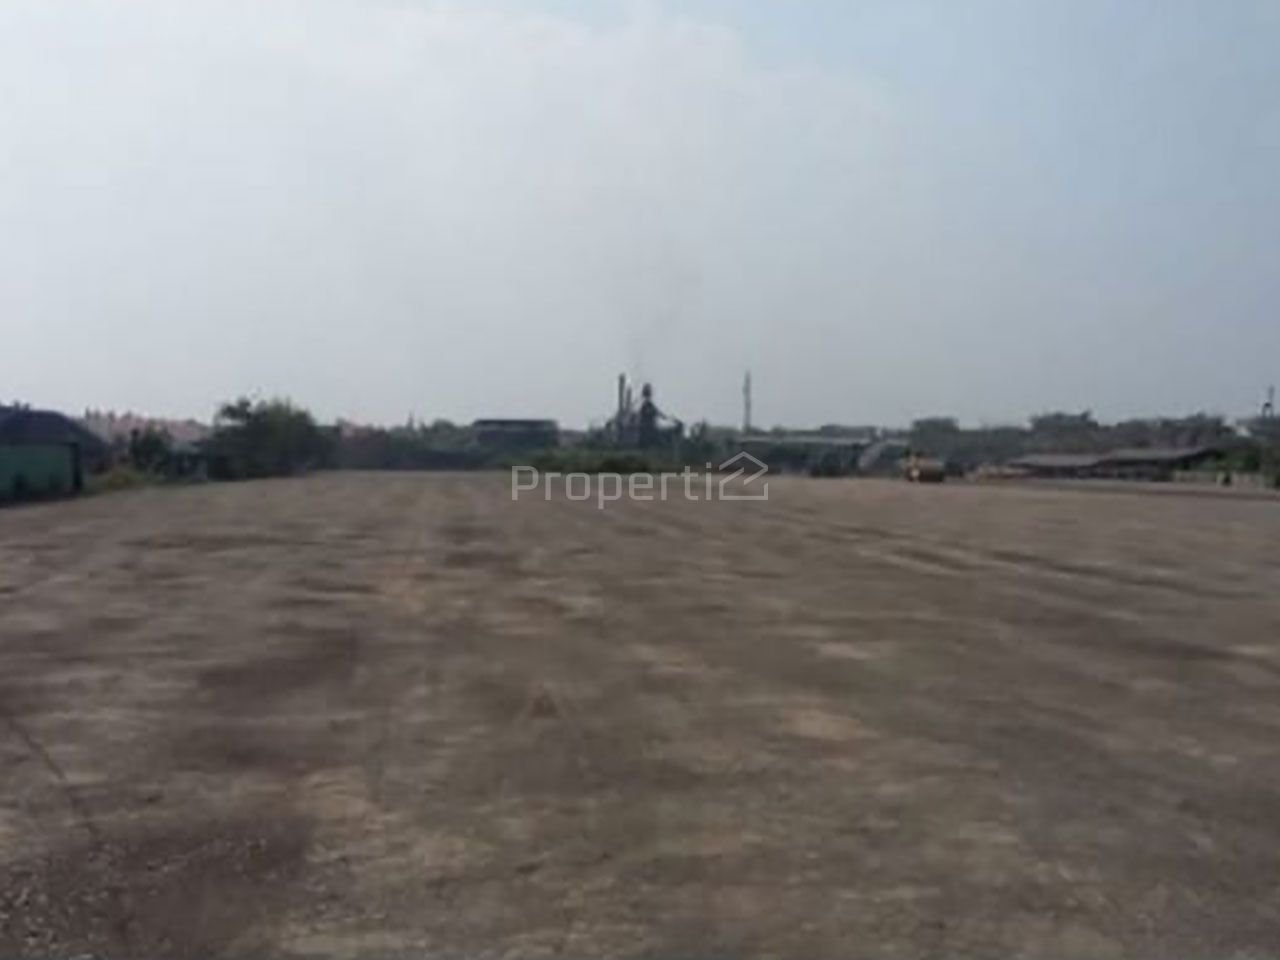 Land 1.5 Ha for Industry and Warehouse in Cakung, DKI Jakarta